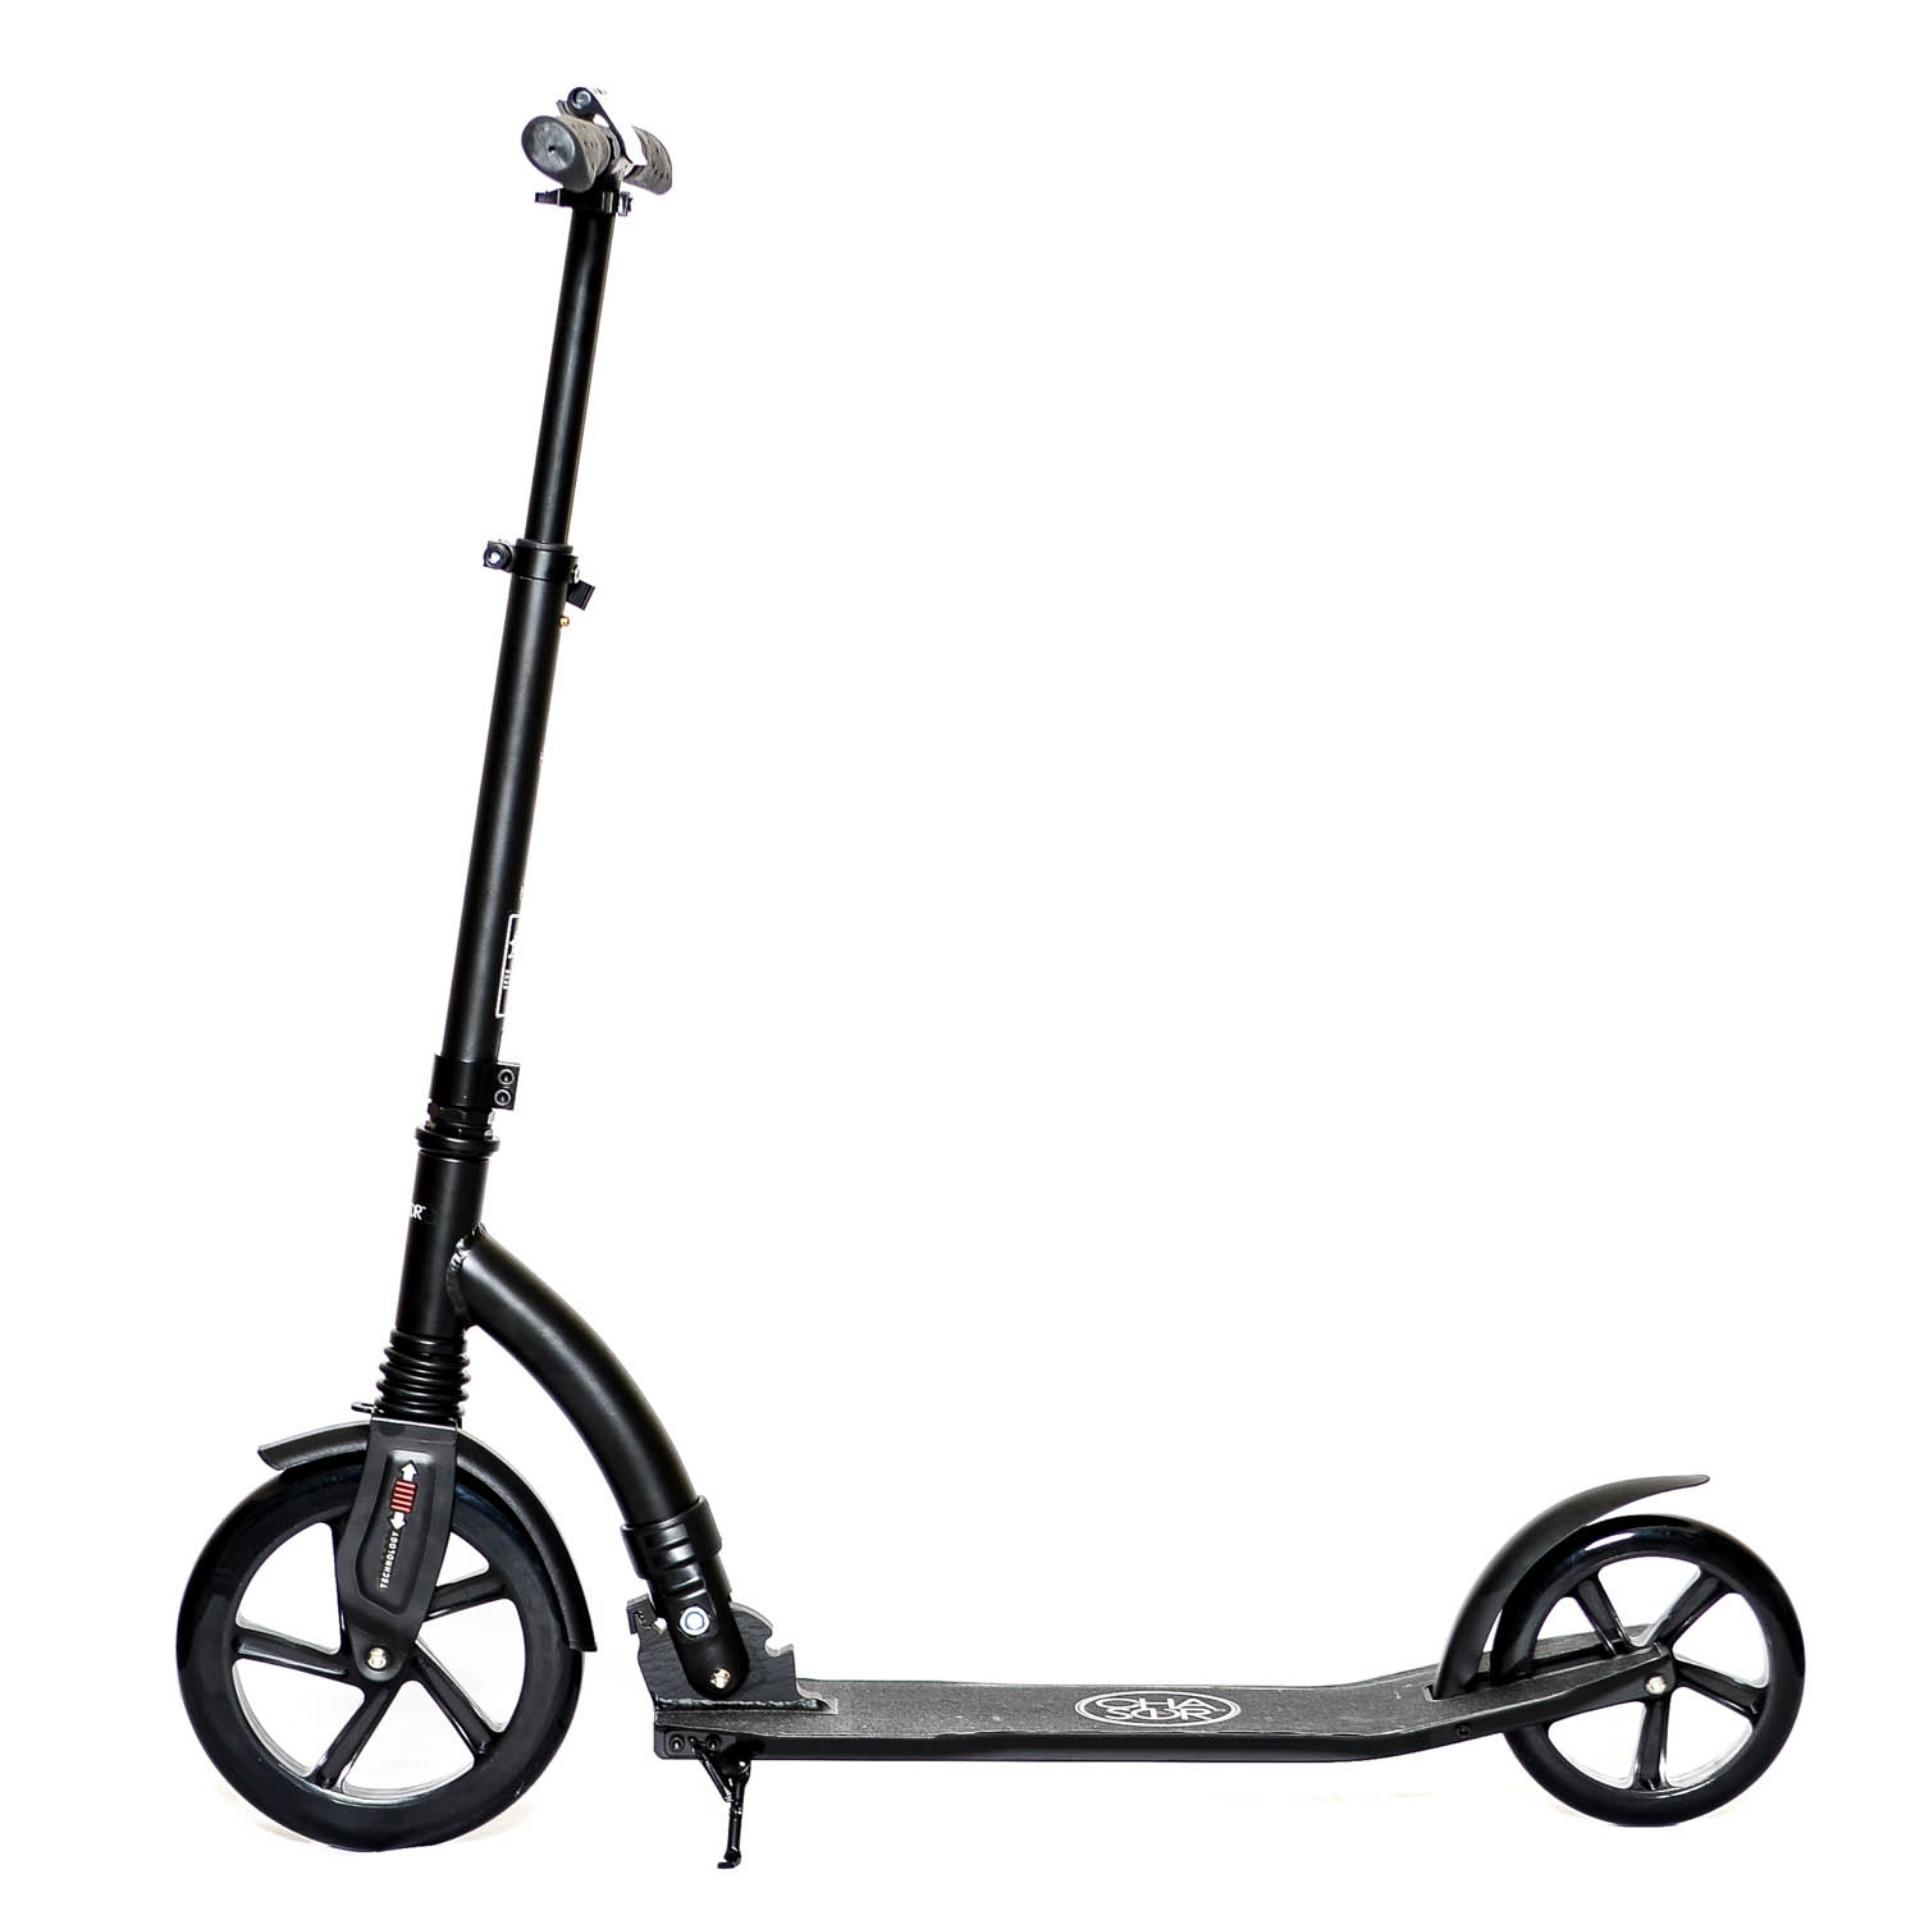 Scooters For Sale Ride Ons Online Brands Prices Reviews In 52cc Scooterx Power Kart Go Chaser Urban Kick Scooter Blackout